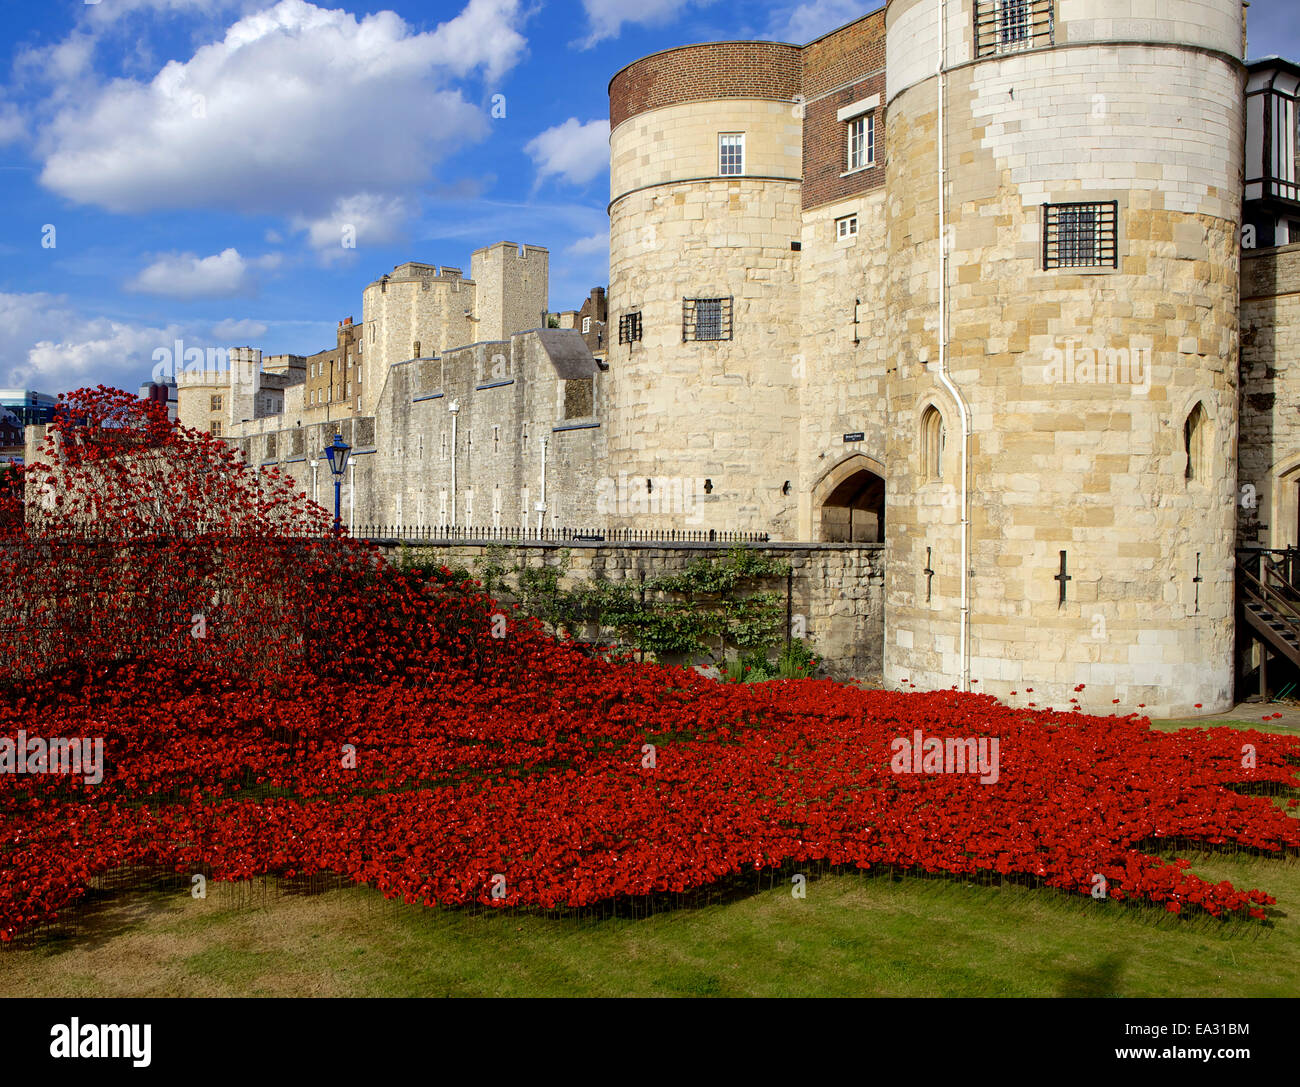 Blood Swept Lands and Seas of Red installation at The Tower of London, Tower of London, UNESCO Site, London, England, Stock Photo